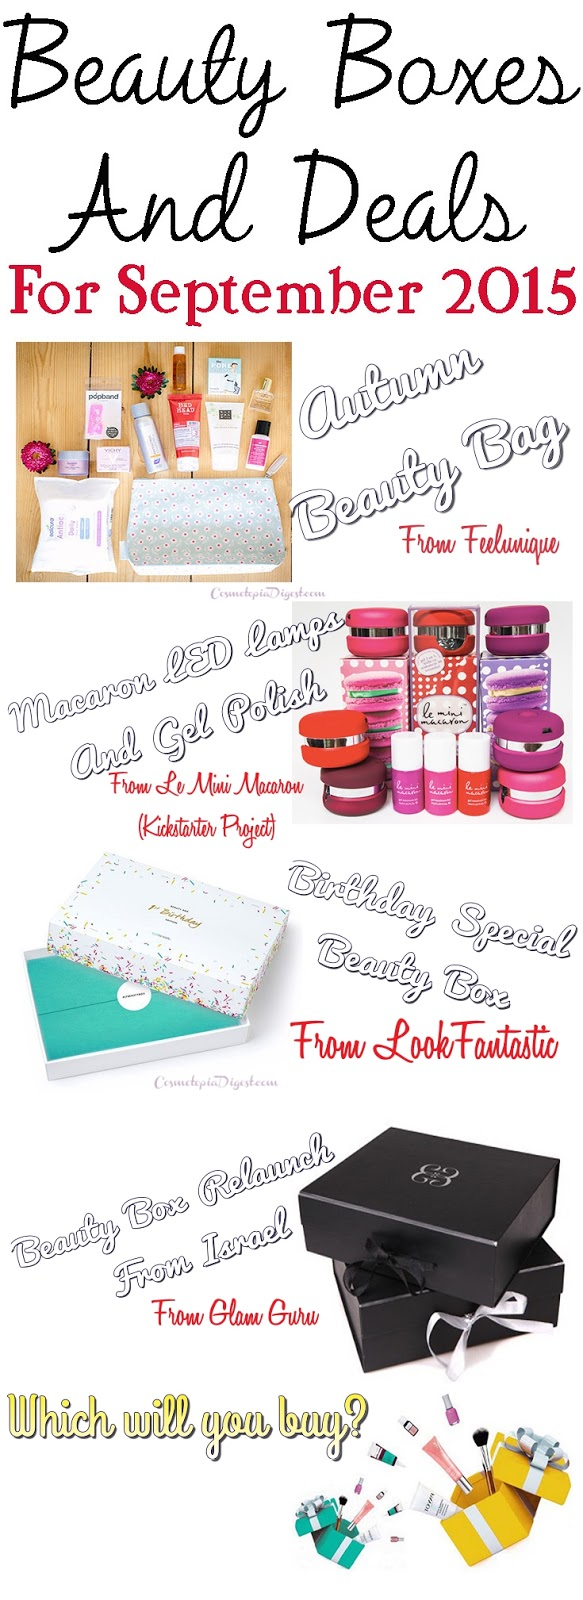 Special Beauty Boxes and Offers For September 2015